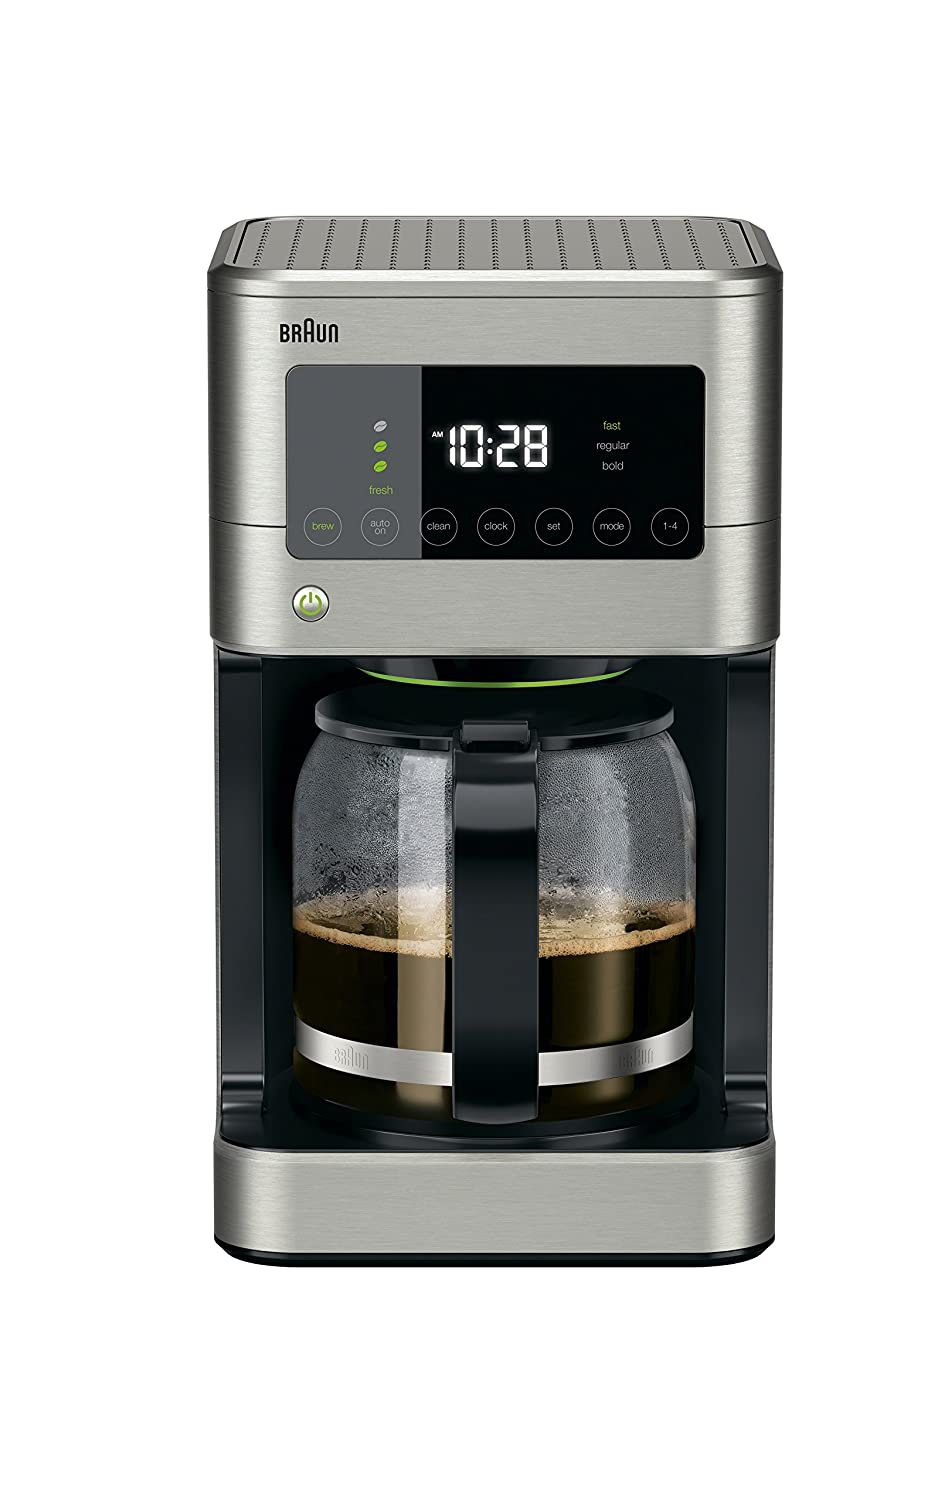 Braun KF7370SI Braun BrewSense Touch Screen Coffee Maker KF7370SI, 12 Cup, Stainless Steel